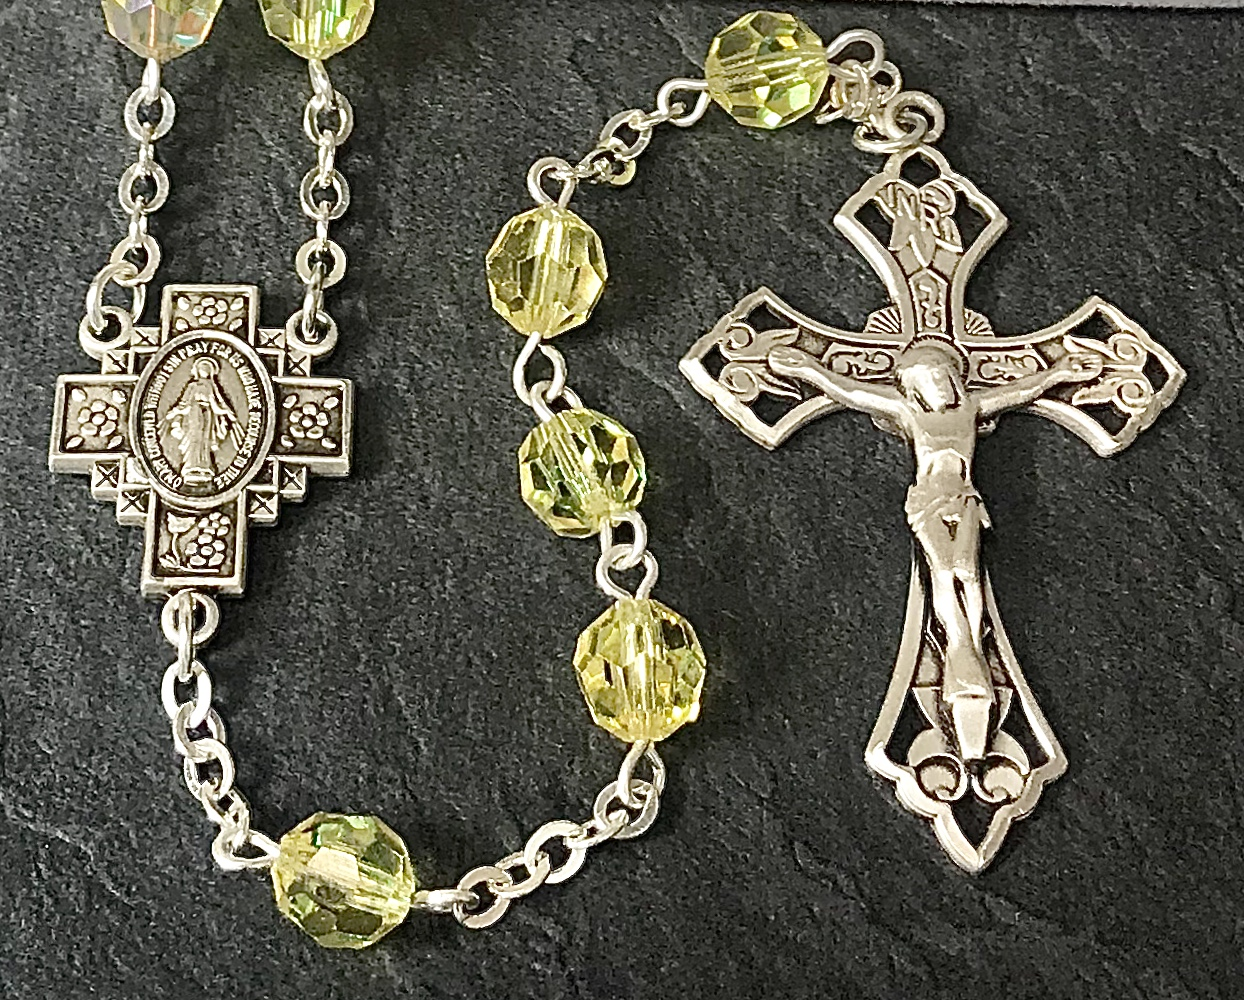 7mm JONQUILLE AB SWAROVSKI  ALL STERLING EXCELSIOR ROSARY WITH STERLING SILVER WIRE, CHAIN, CROSS, & CENTER